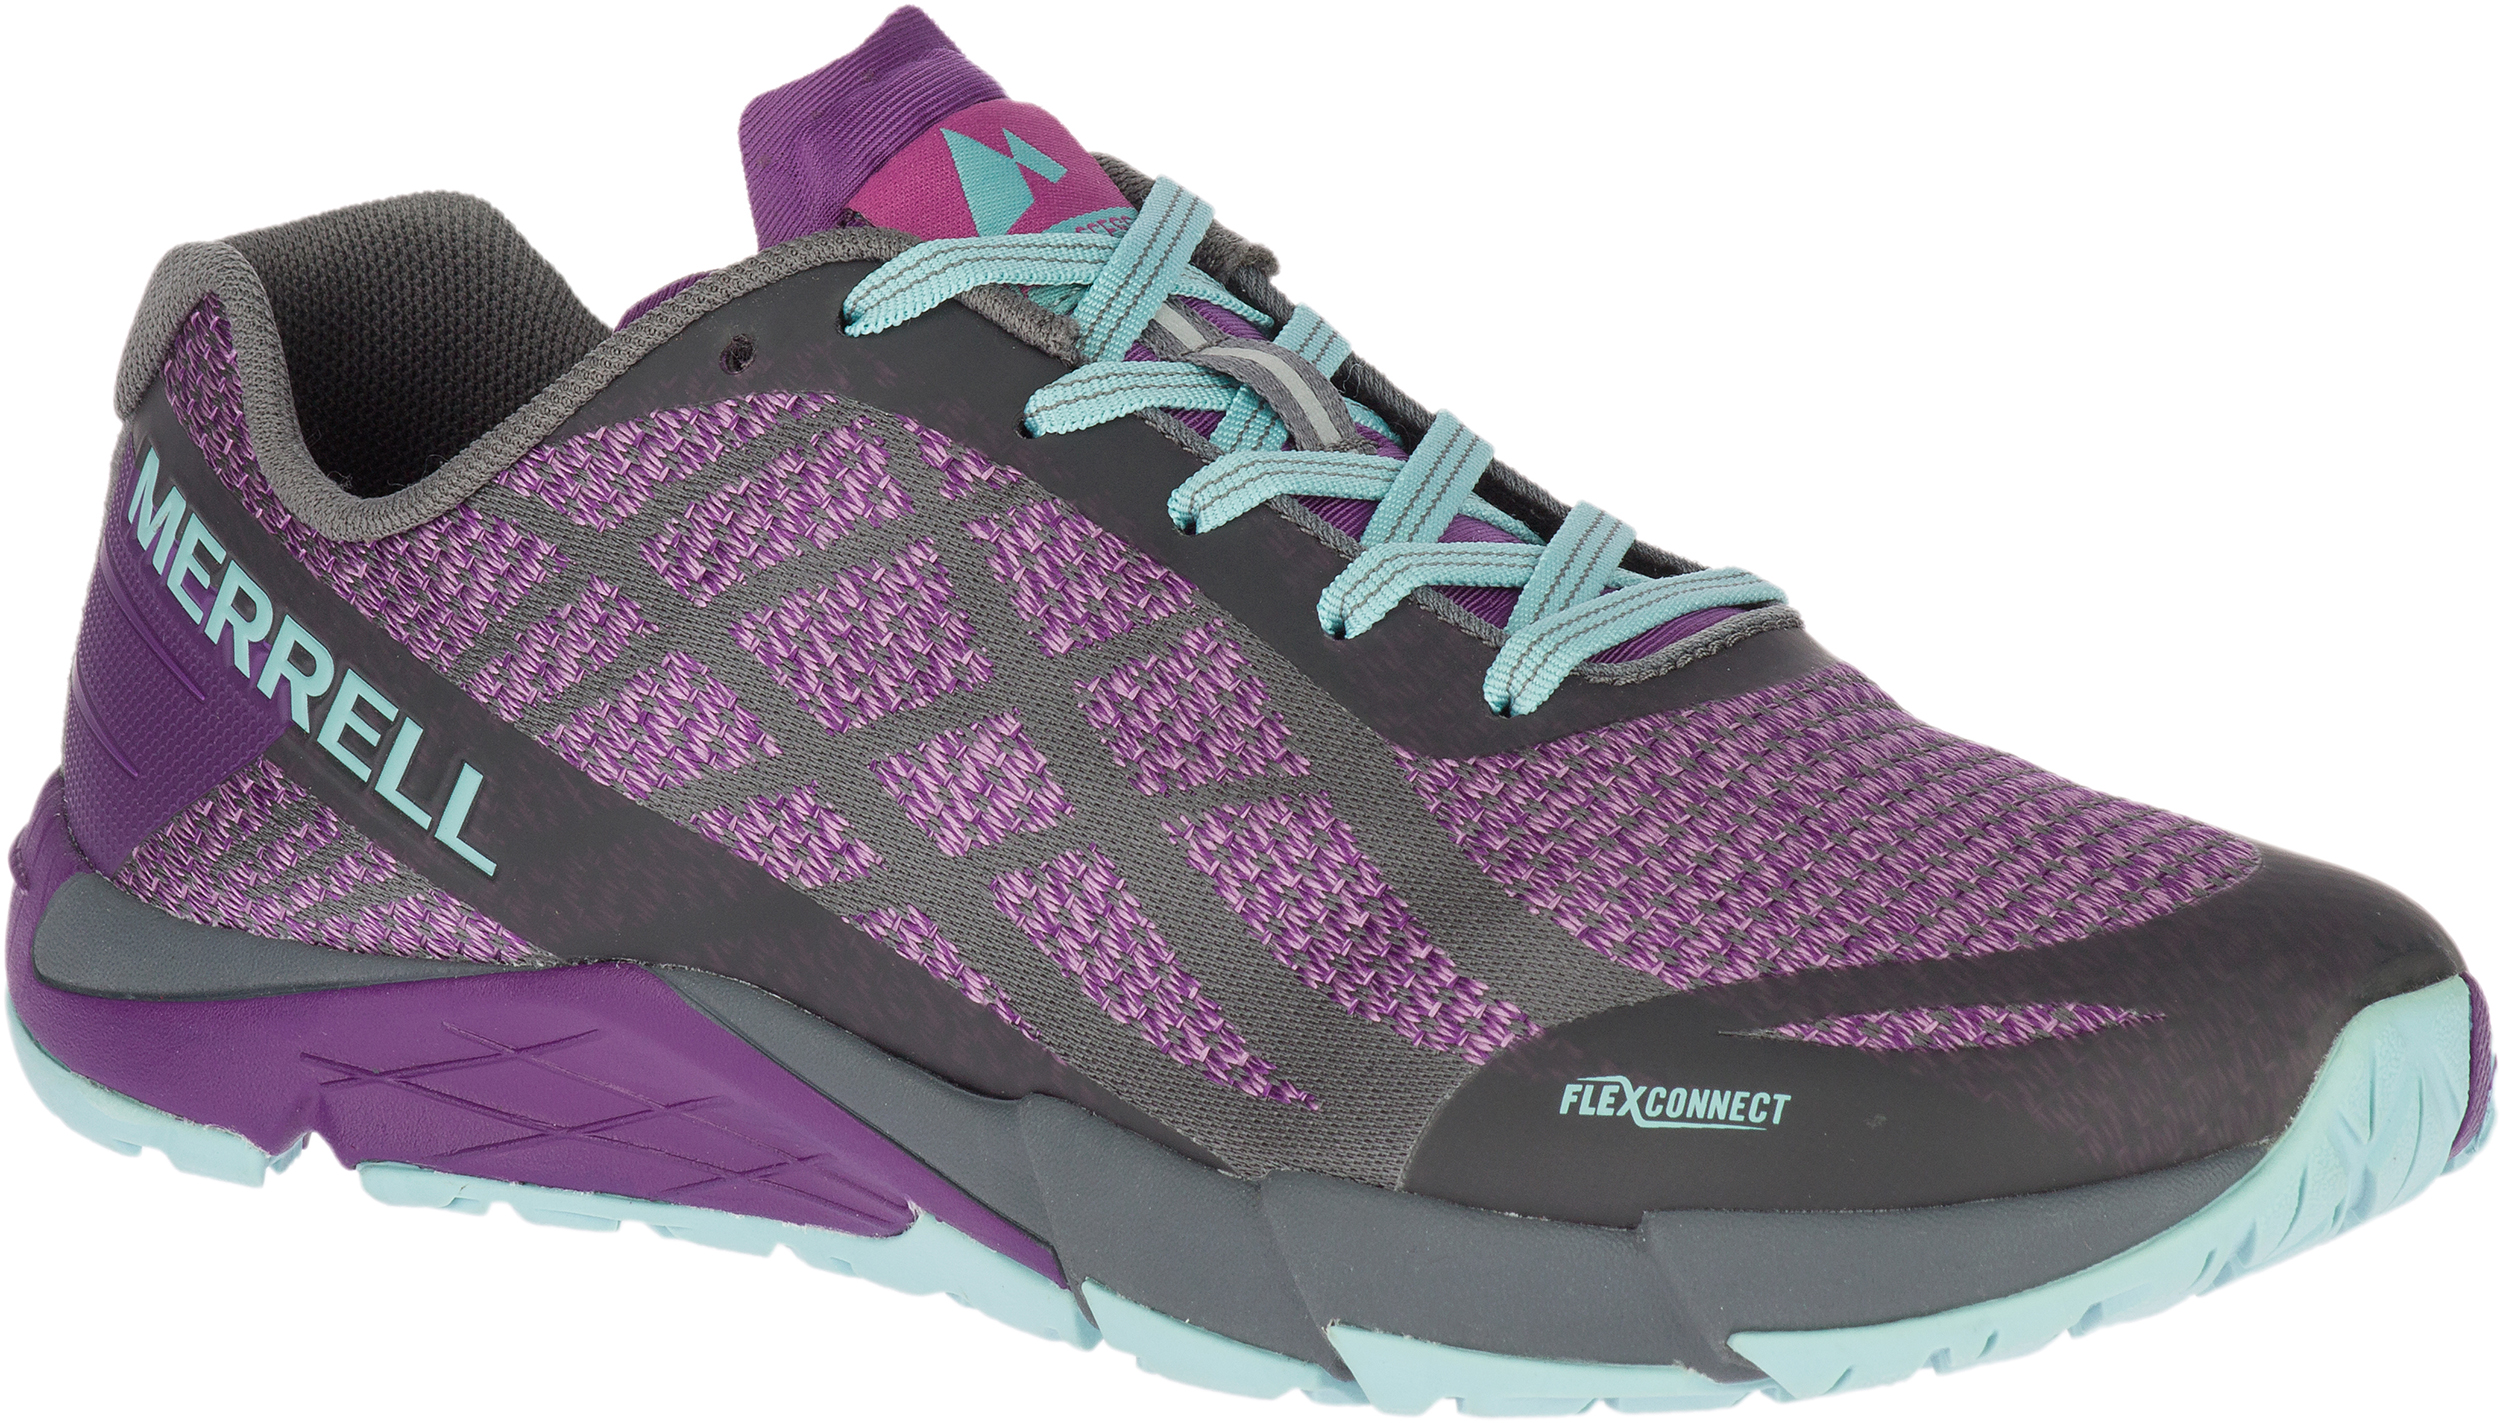 quality design 0f307 90d2a Women s Trail running shoes